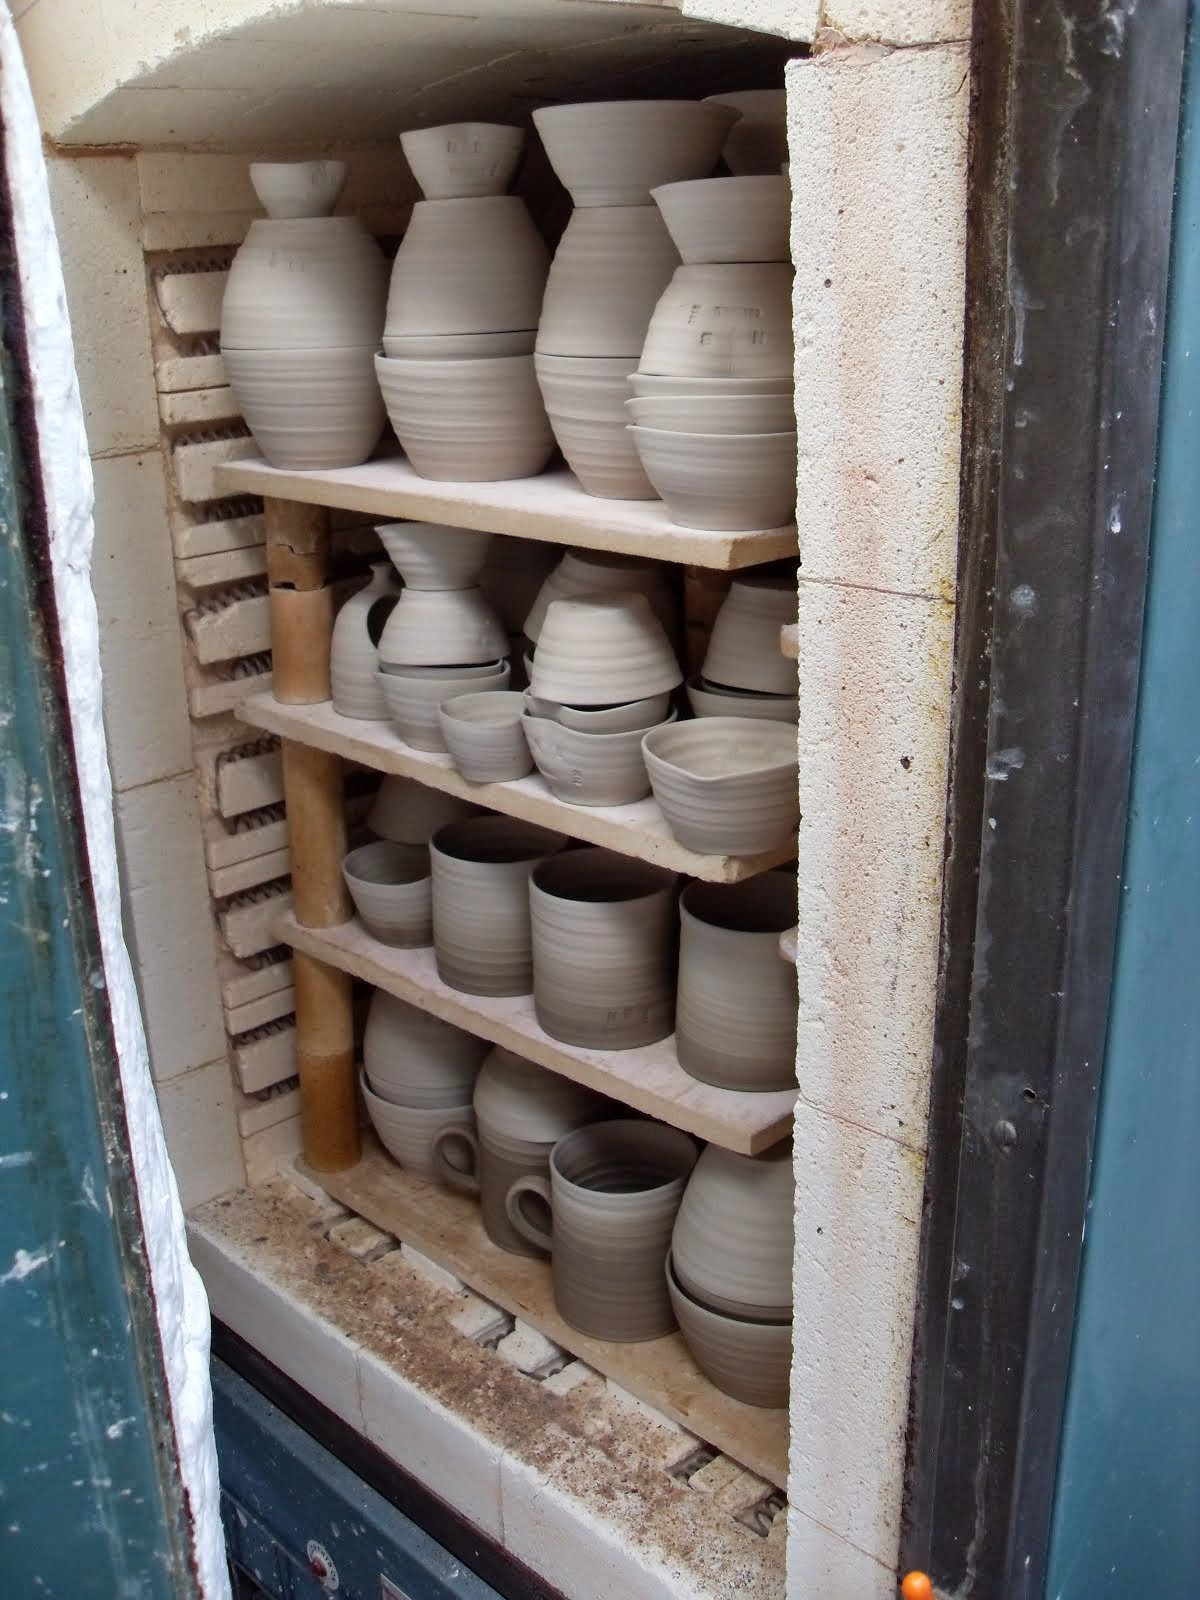 Pots for sale fresh from the kiln..